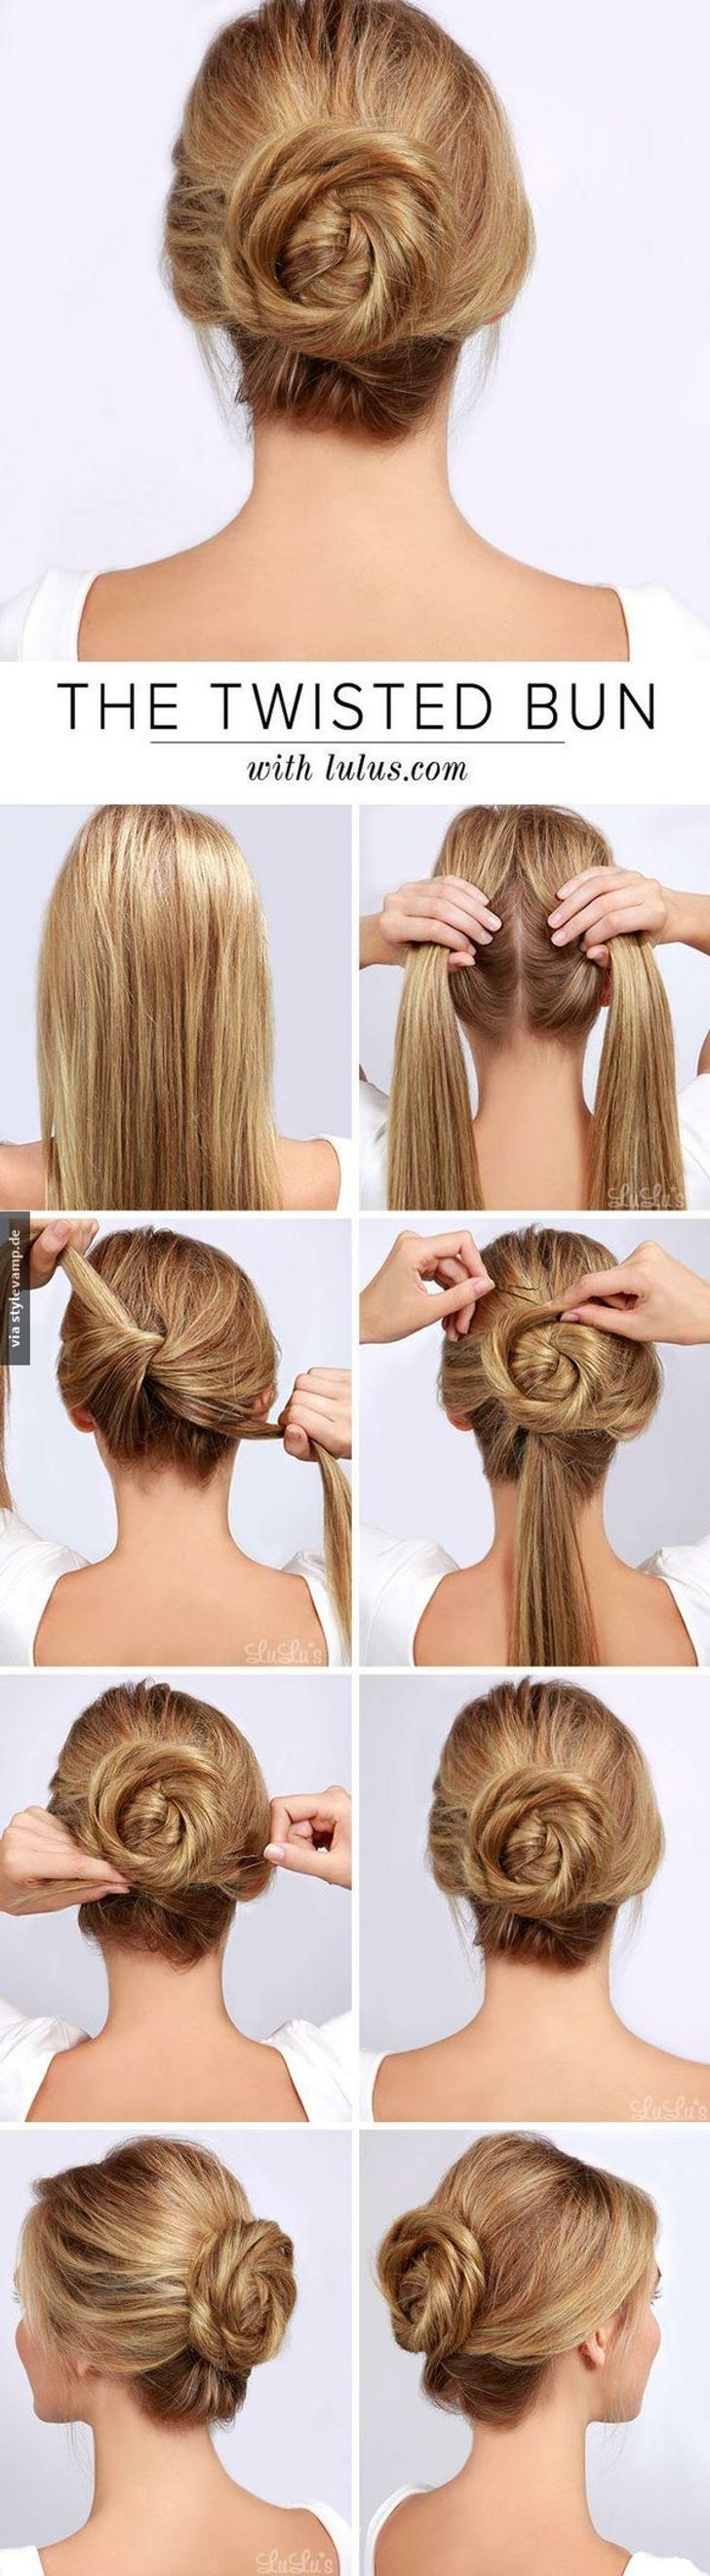 10 Easy Hairstyles For A Gorgeous Look